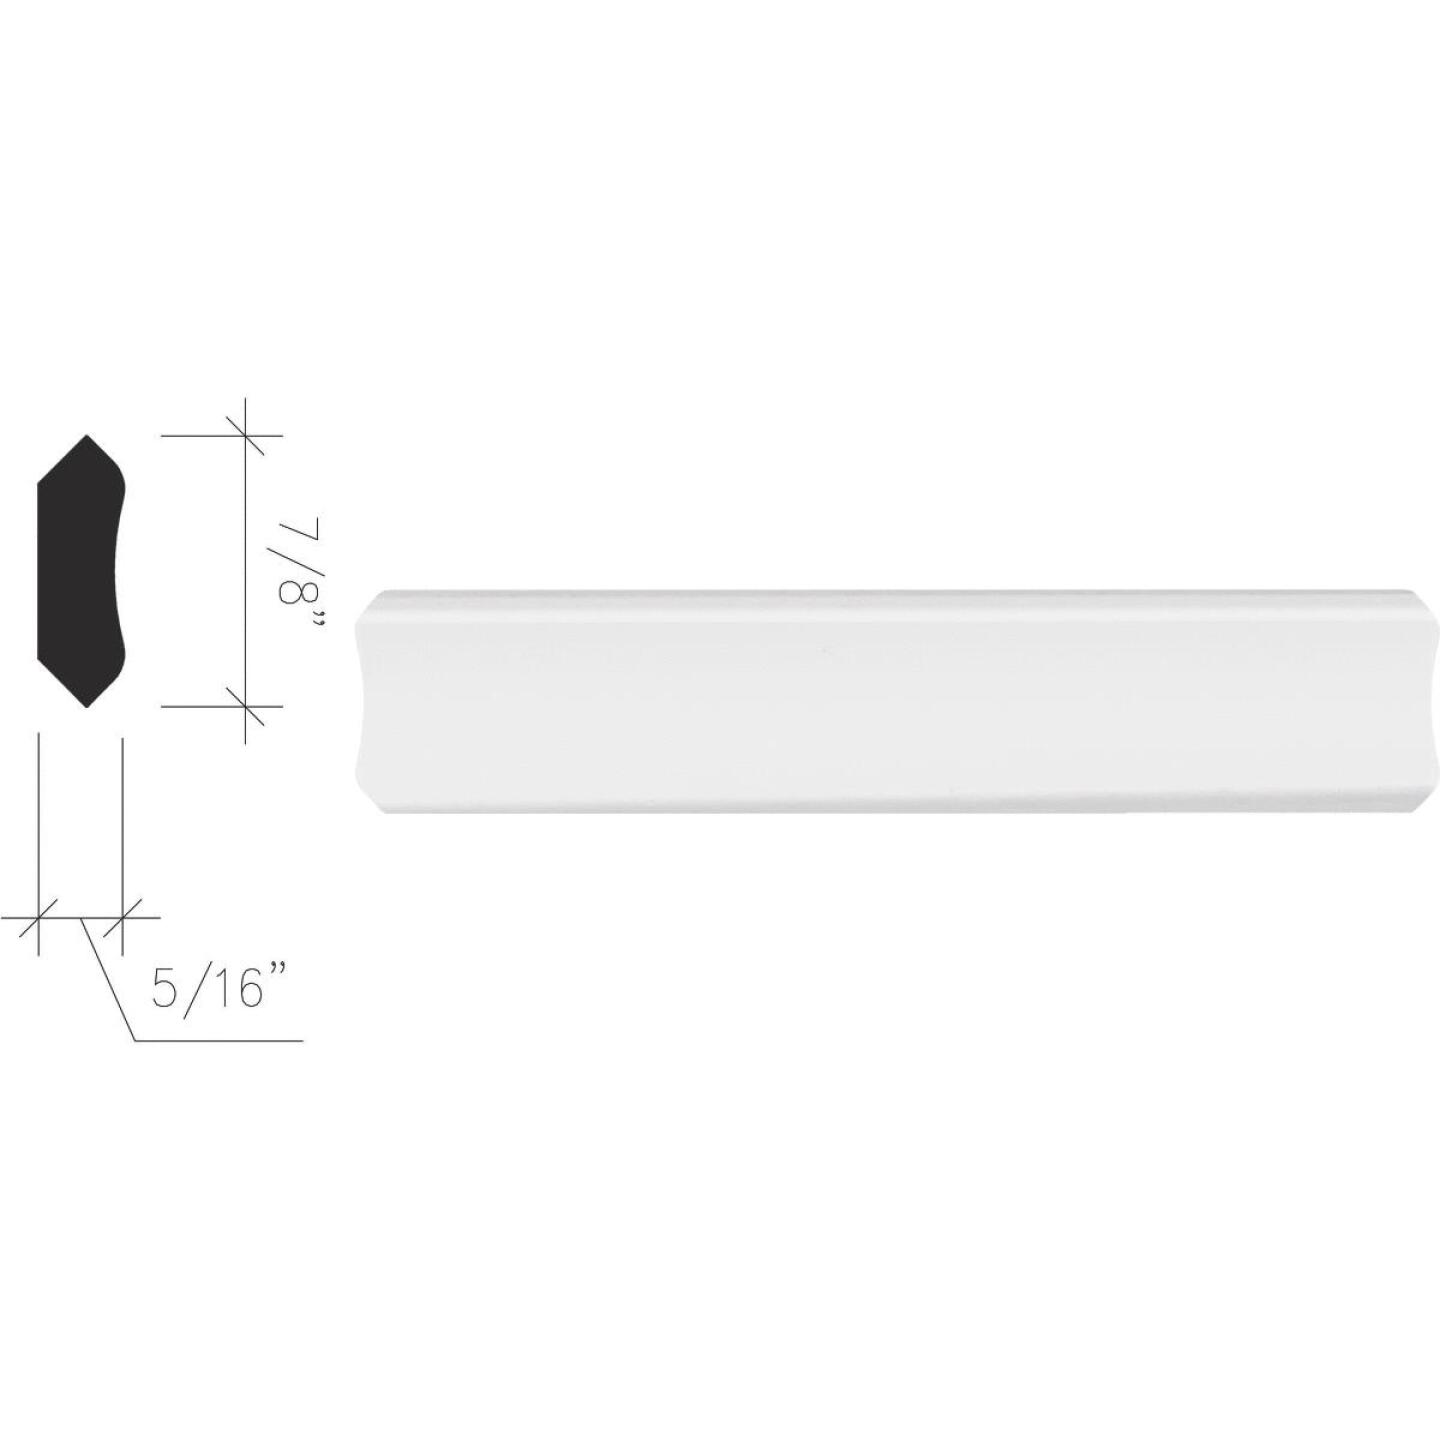 Inteplast Building Products 5/16 In. x 7/8 In. x 8 Ft. Crystal White Polystyrene Inside Corner Molding Image 1